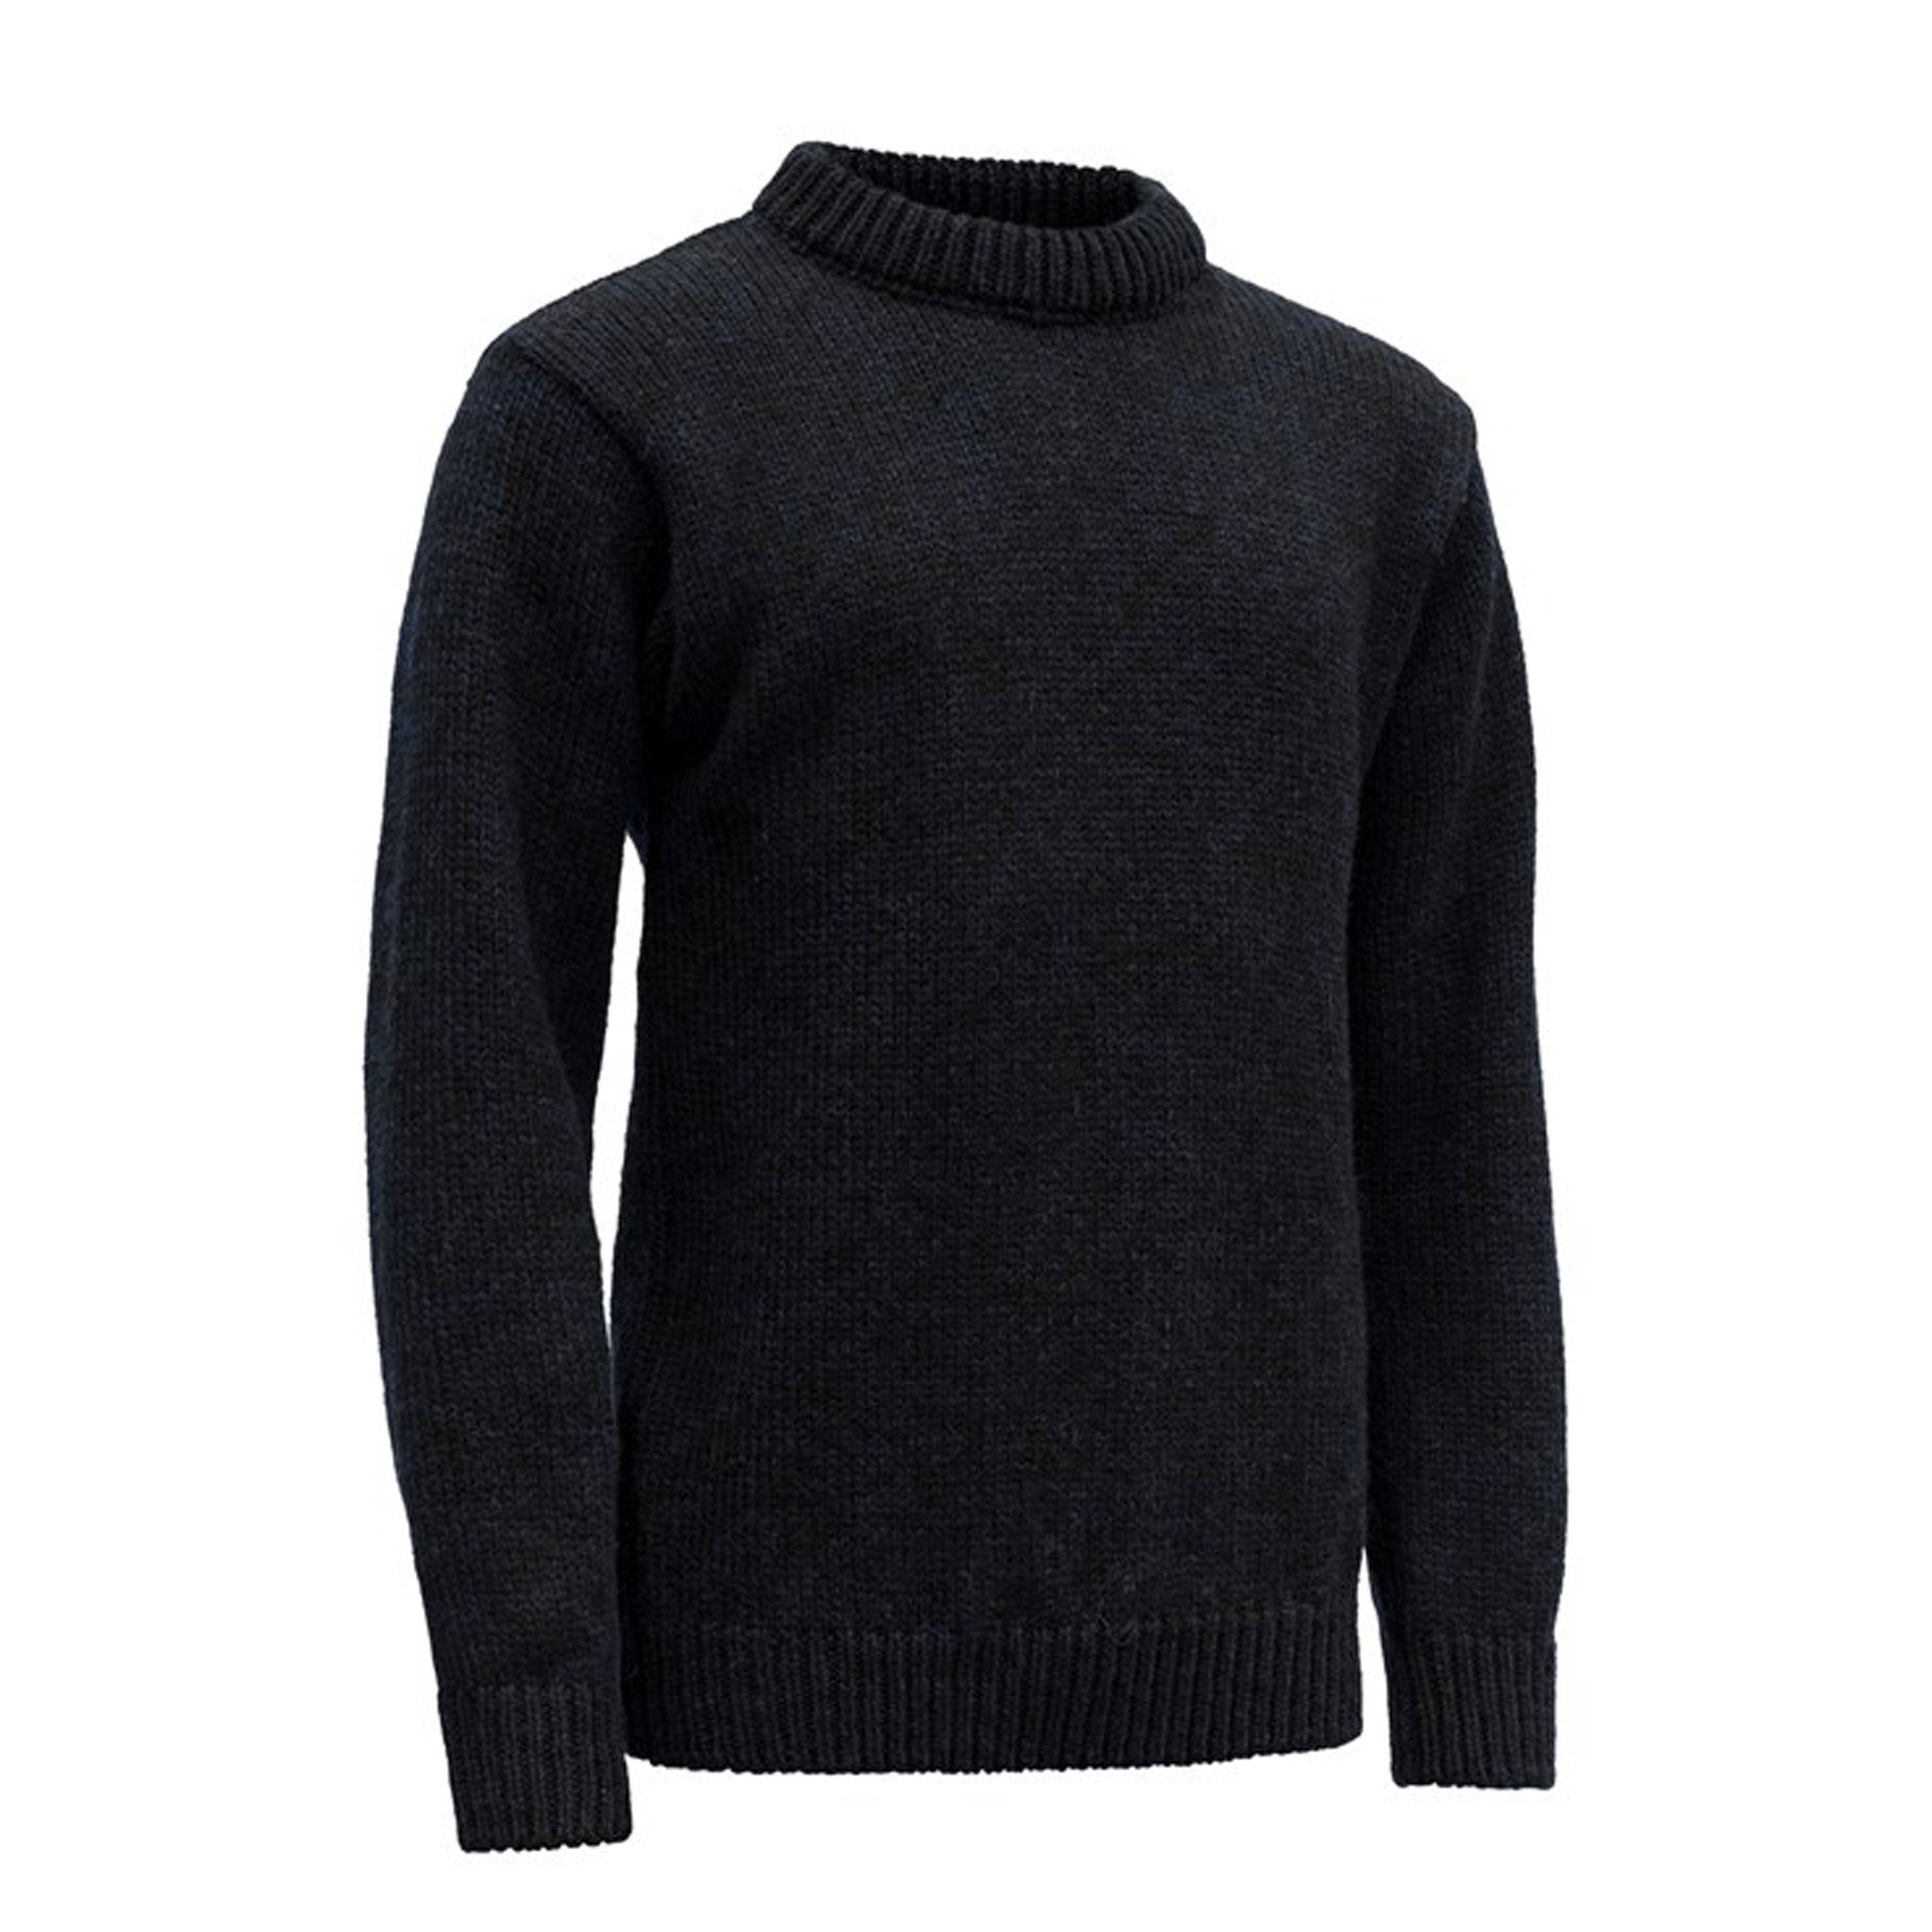 Devold Nansen Crew Neck Sweater